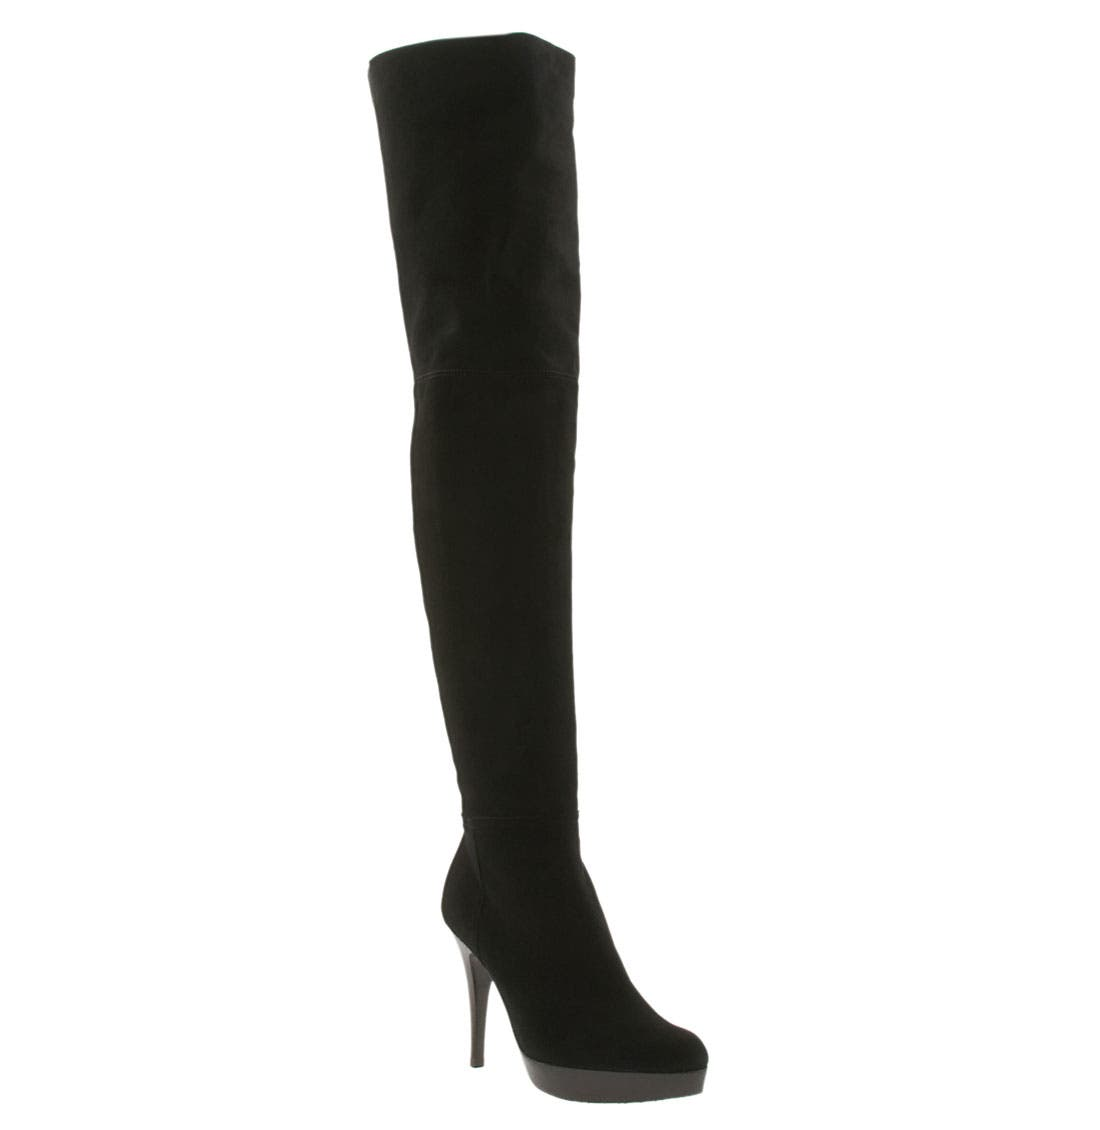 Main Image - Stuart Weitzman 'Hiho' Thigh High Boot